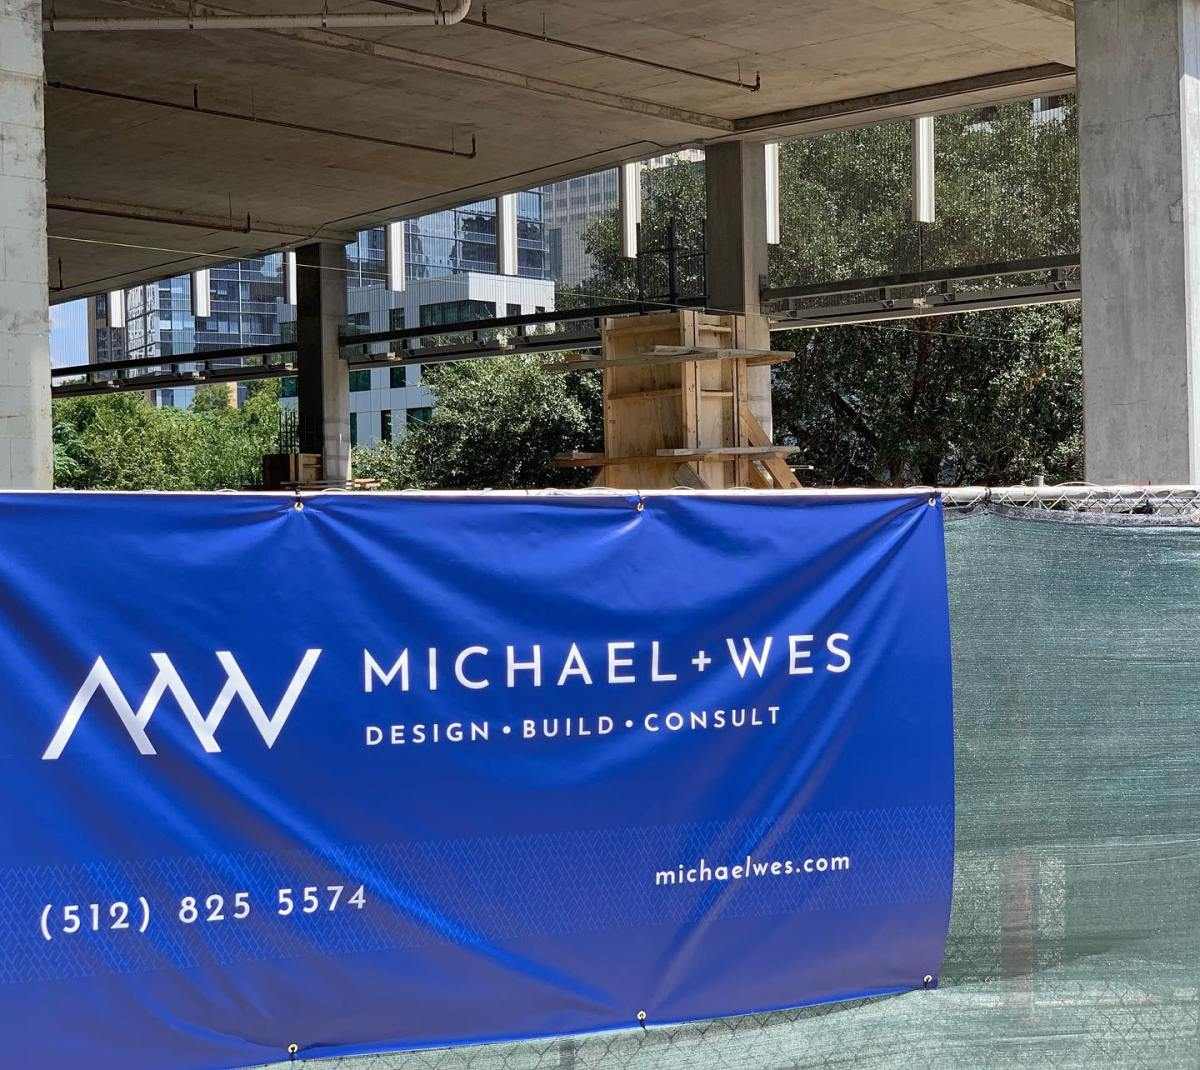 Always great to see a new sign raised on our projects.